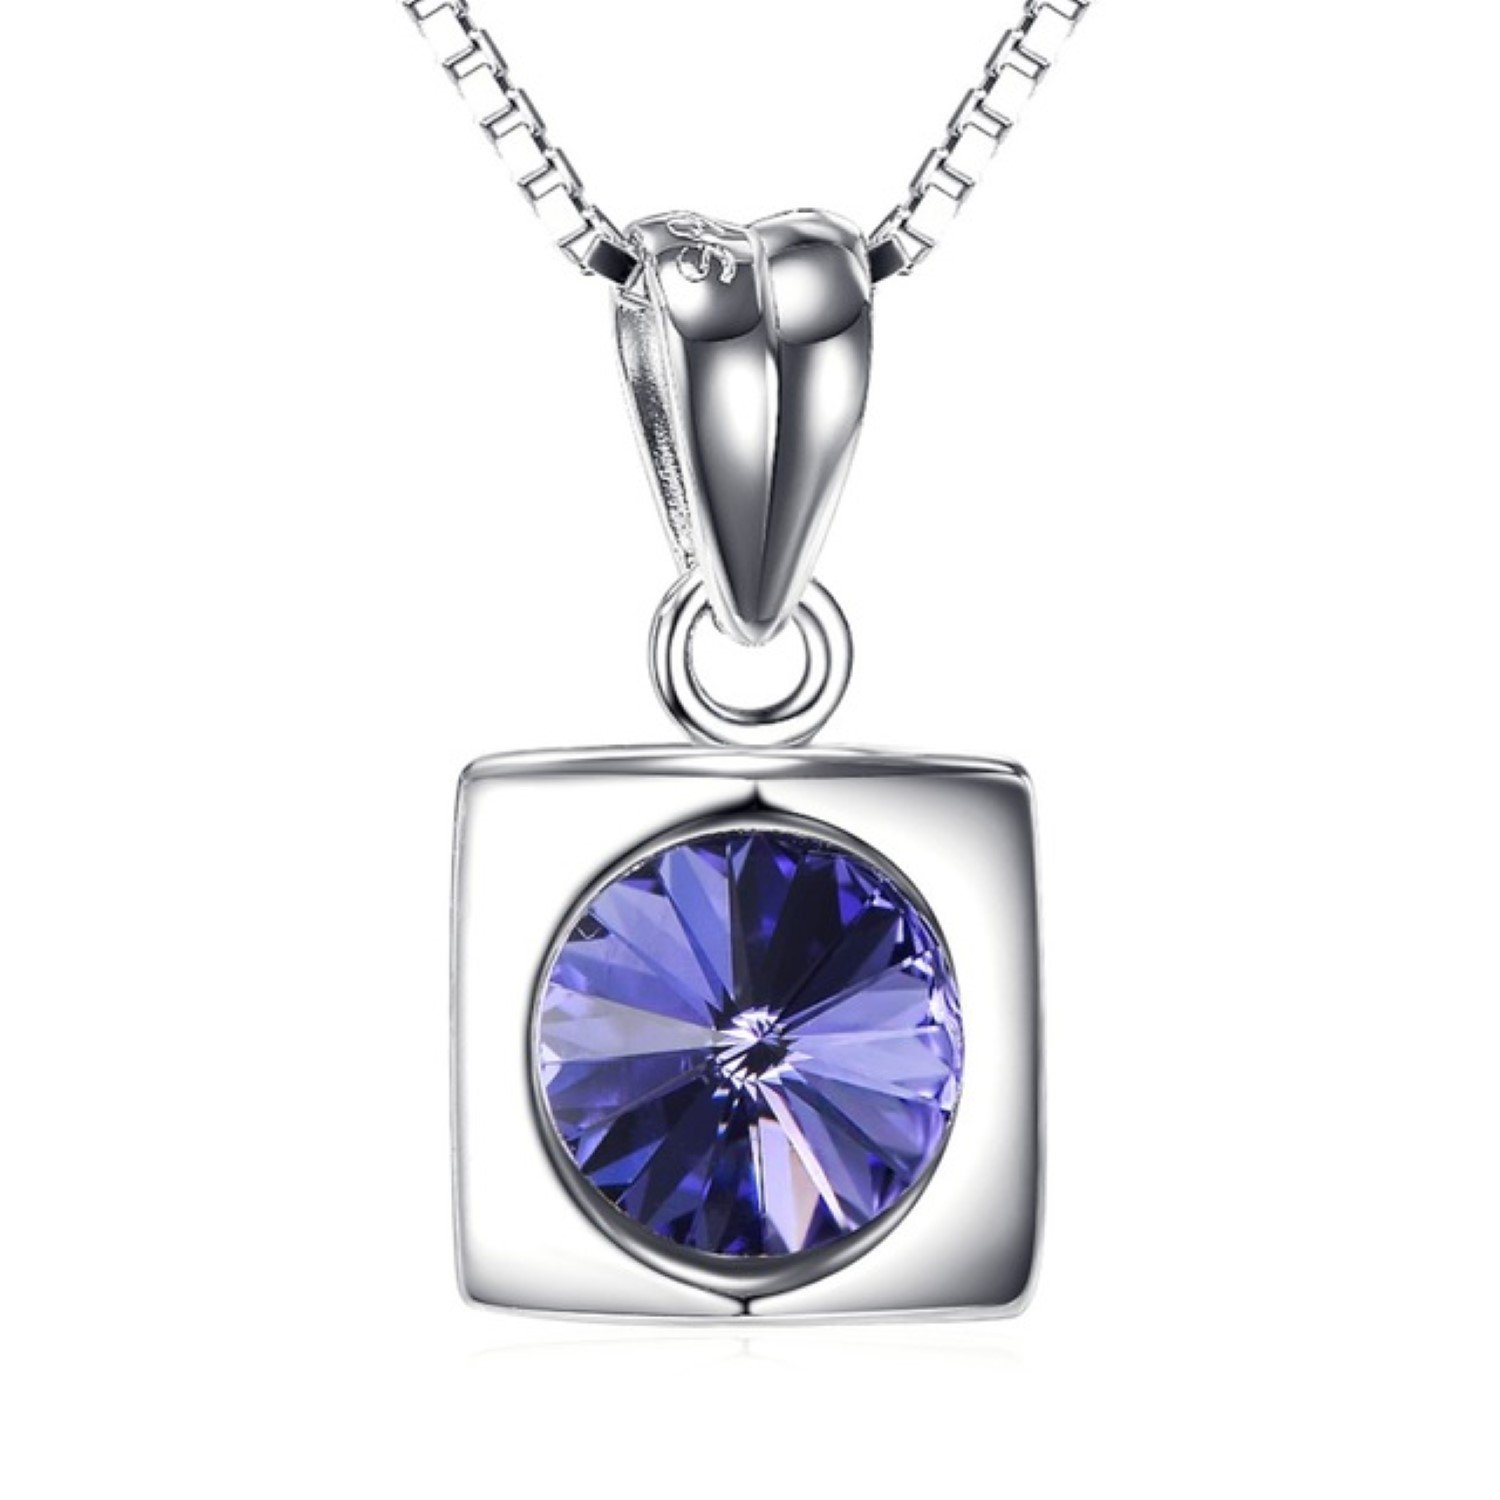 CS-DB Womens Necklaces by Silver Pendant Purple Crystal Square Jewelry Charm Girls